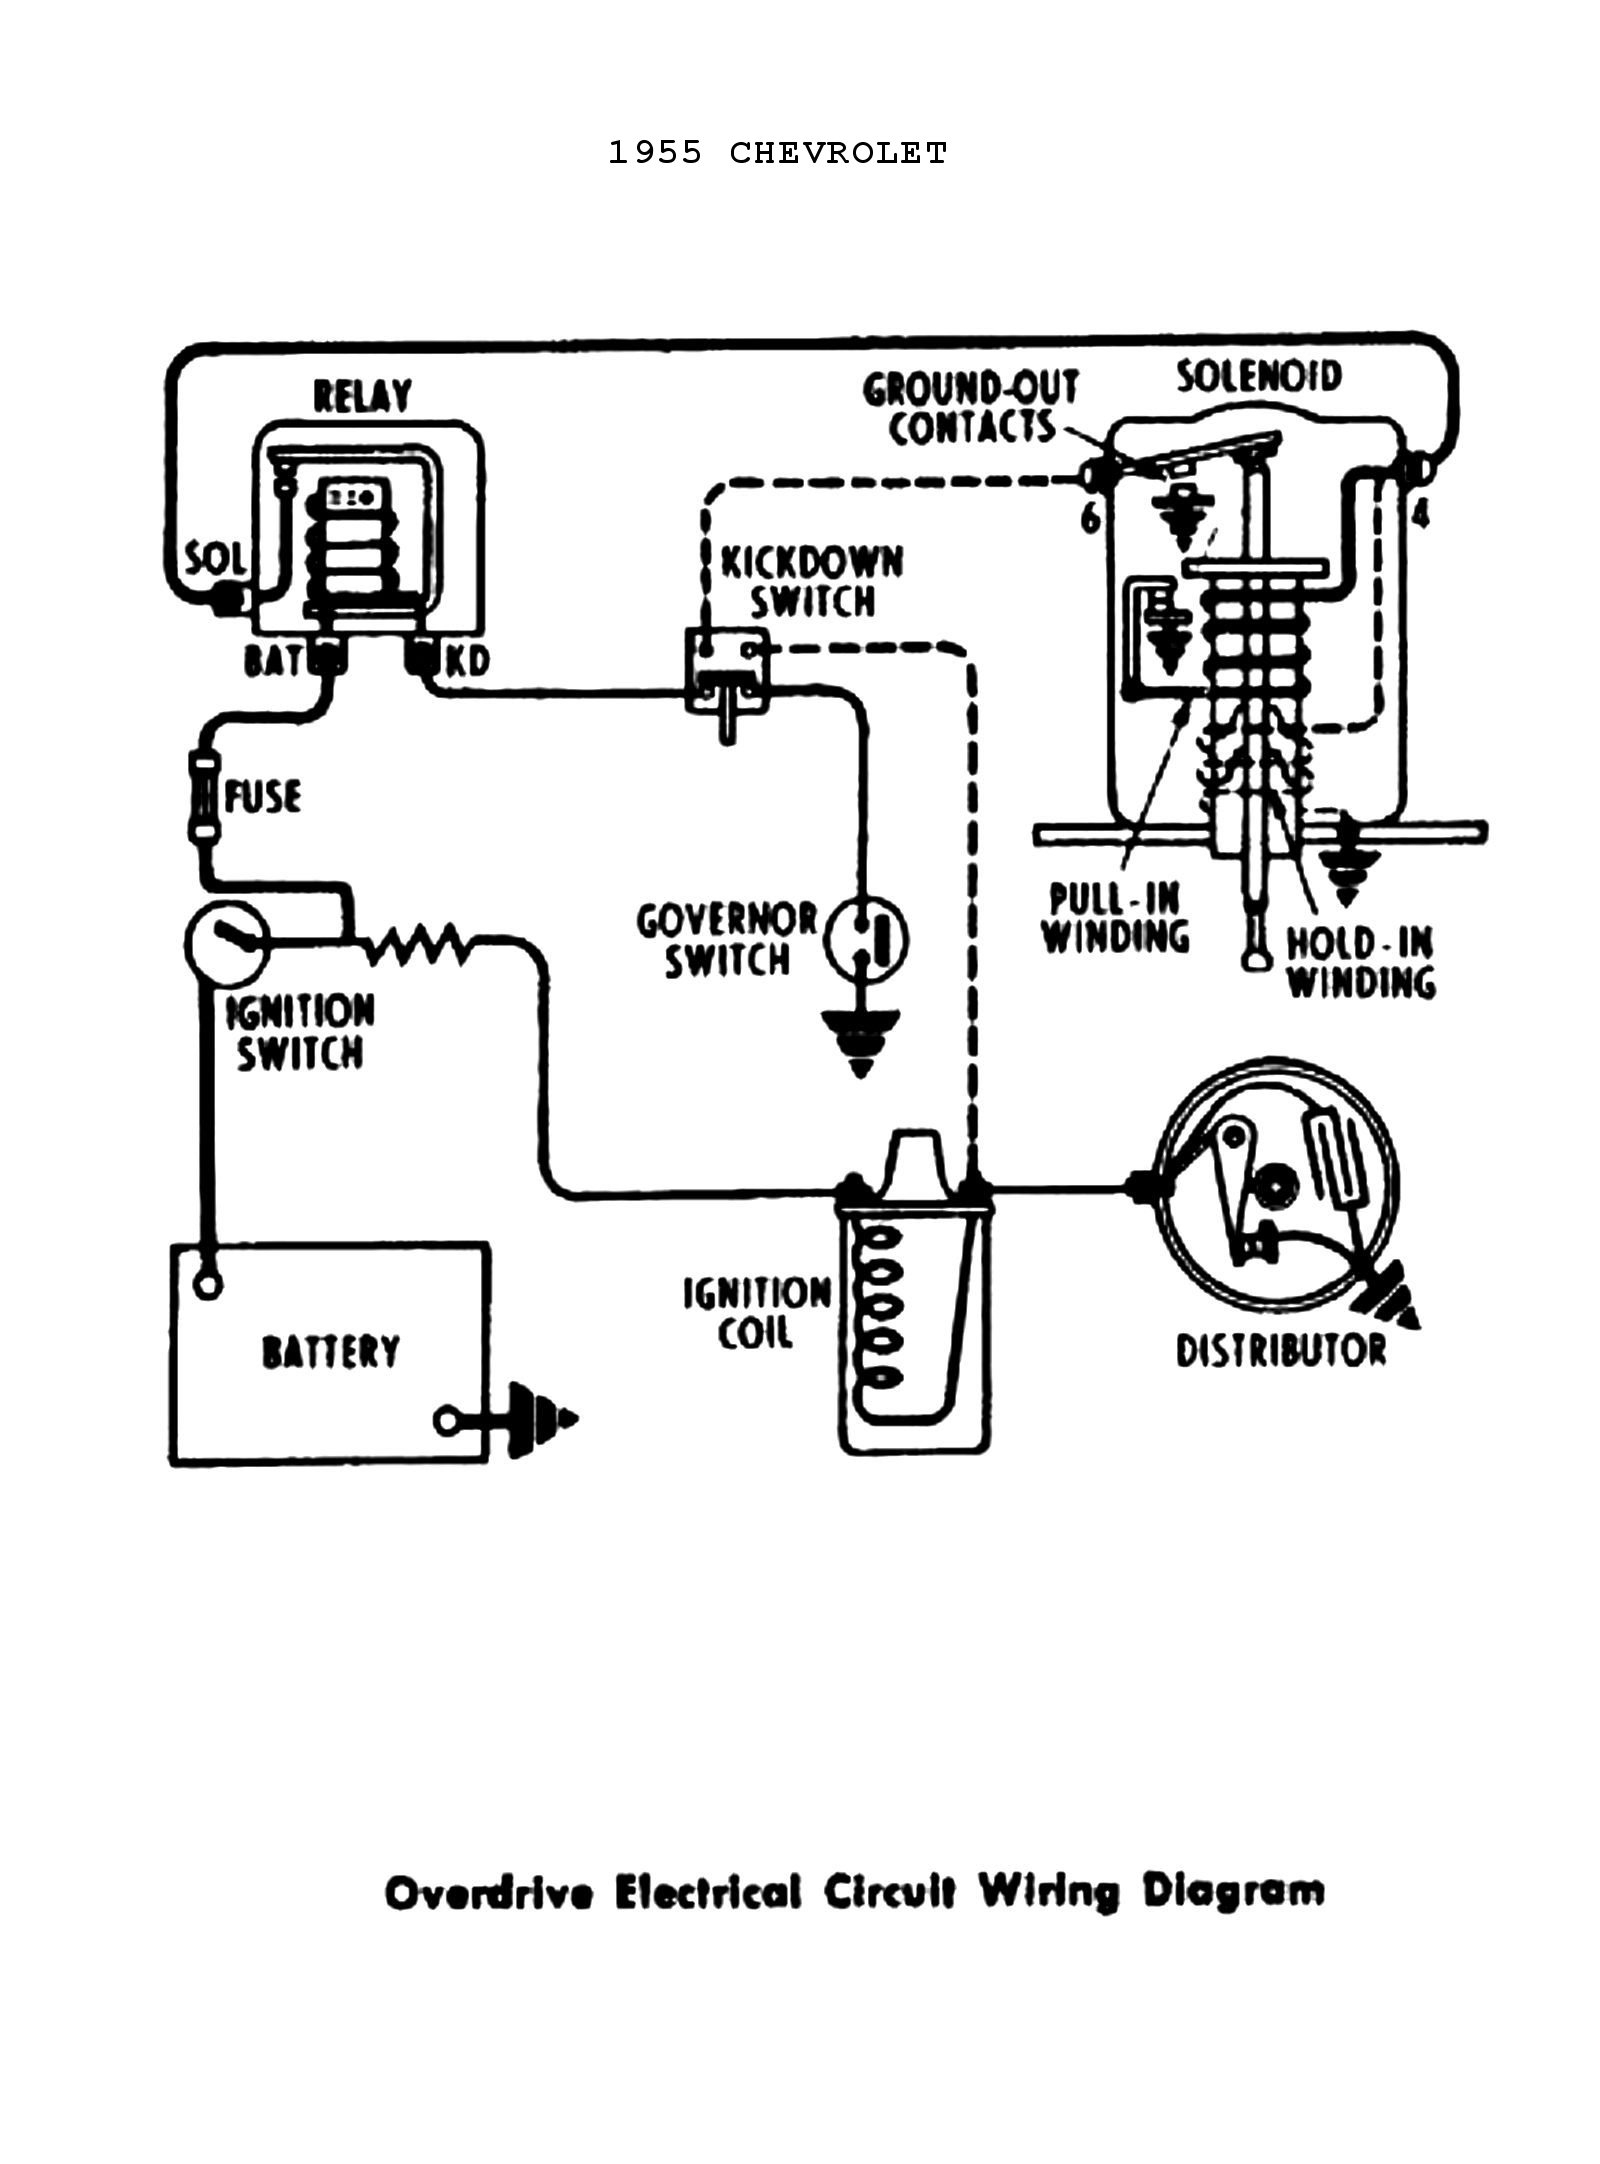 Chevy Wiring Diagrams - Ignition Switch Wiring Diagram Chevy